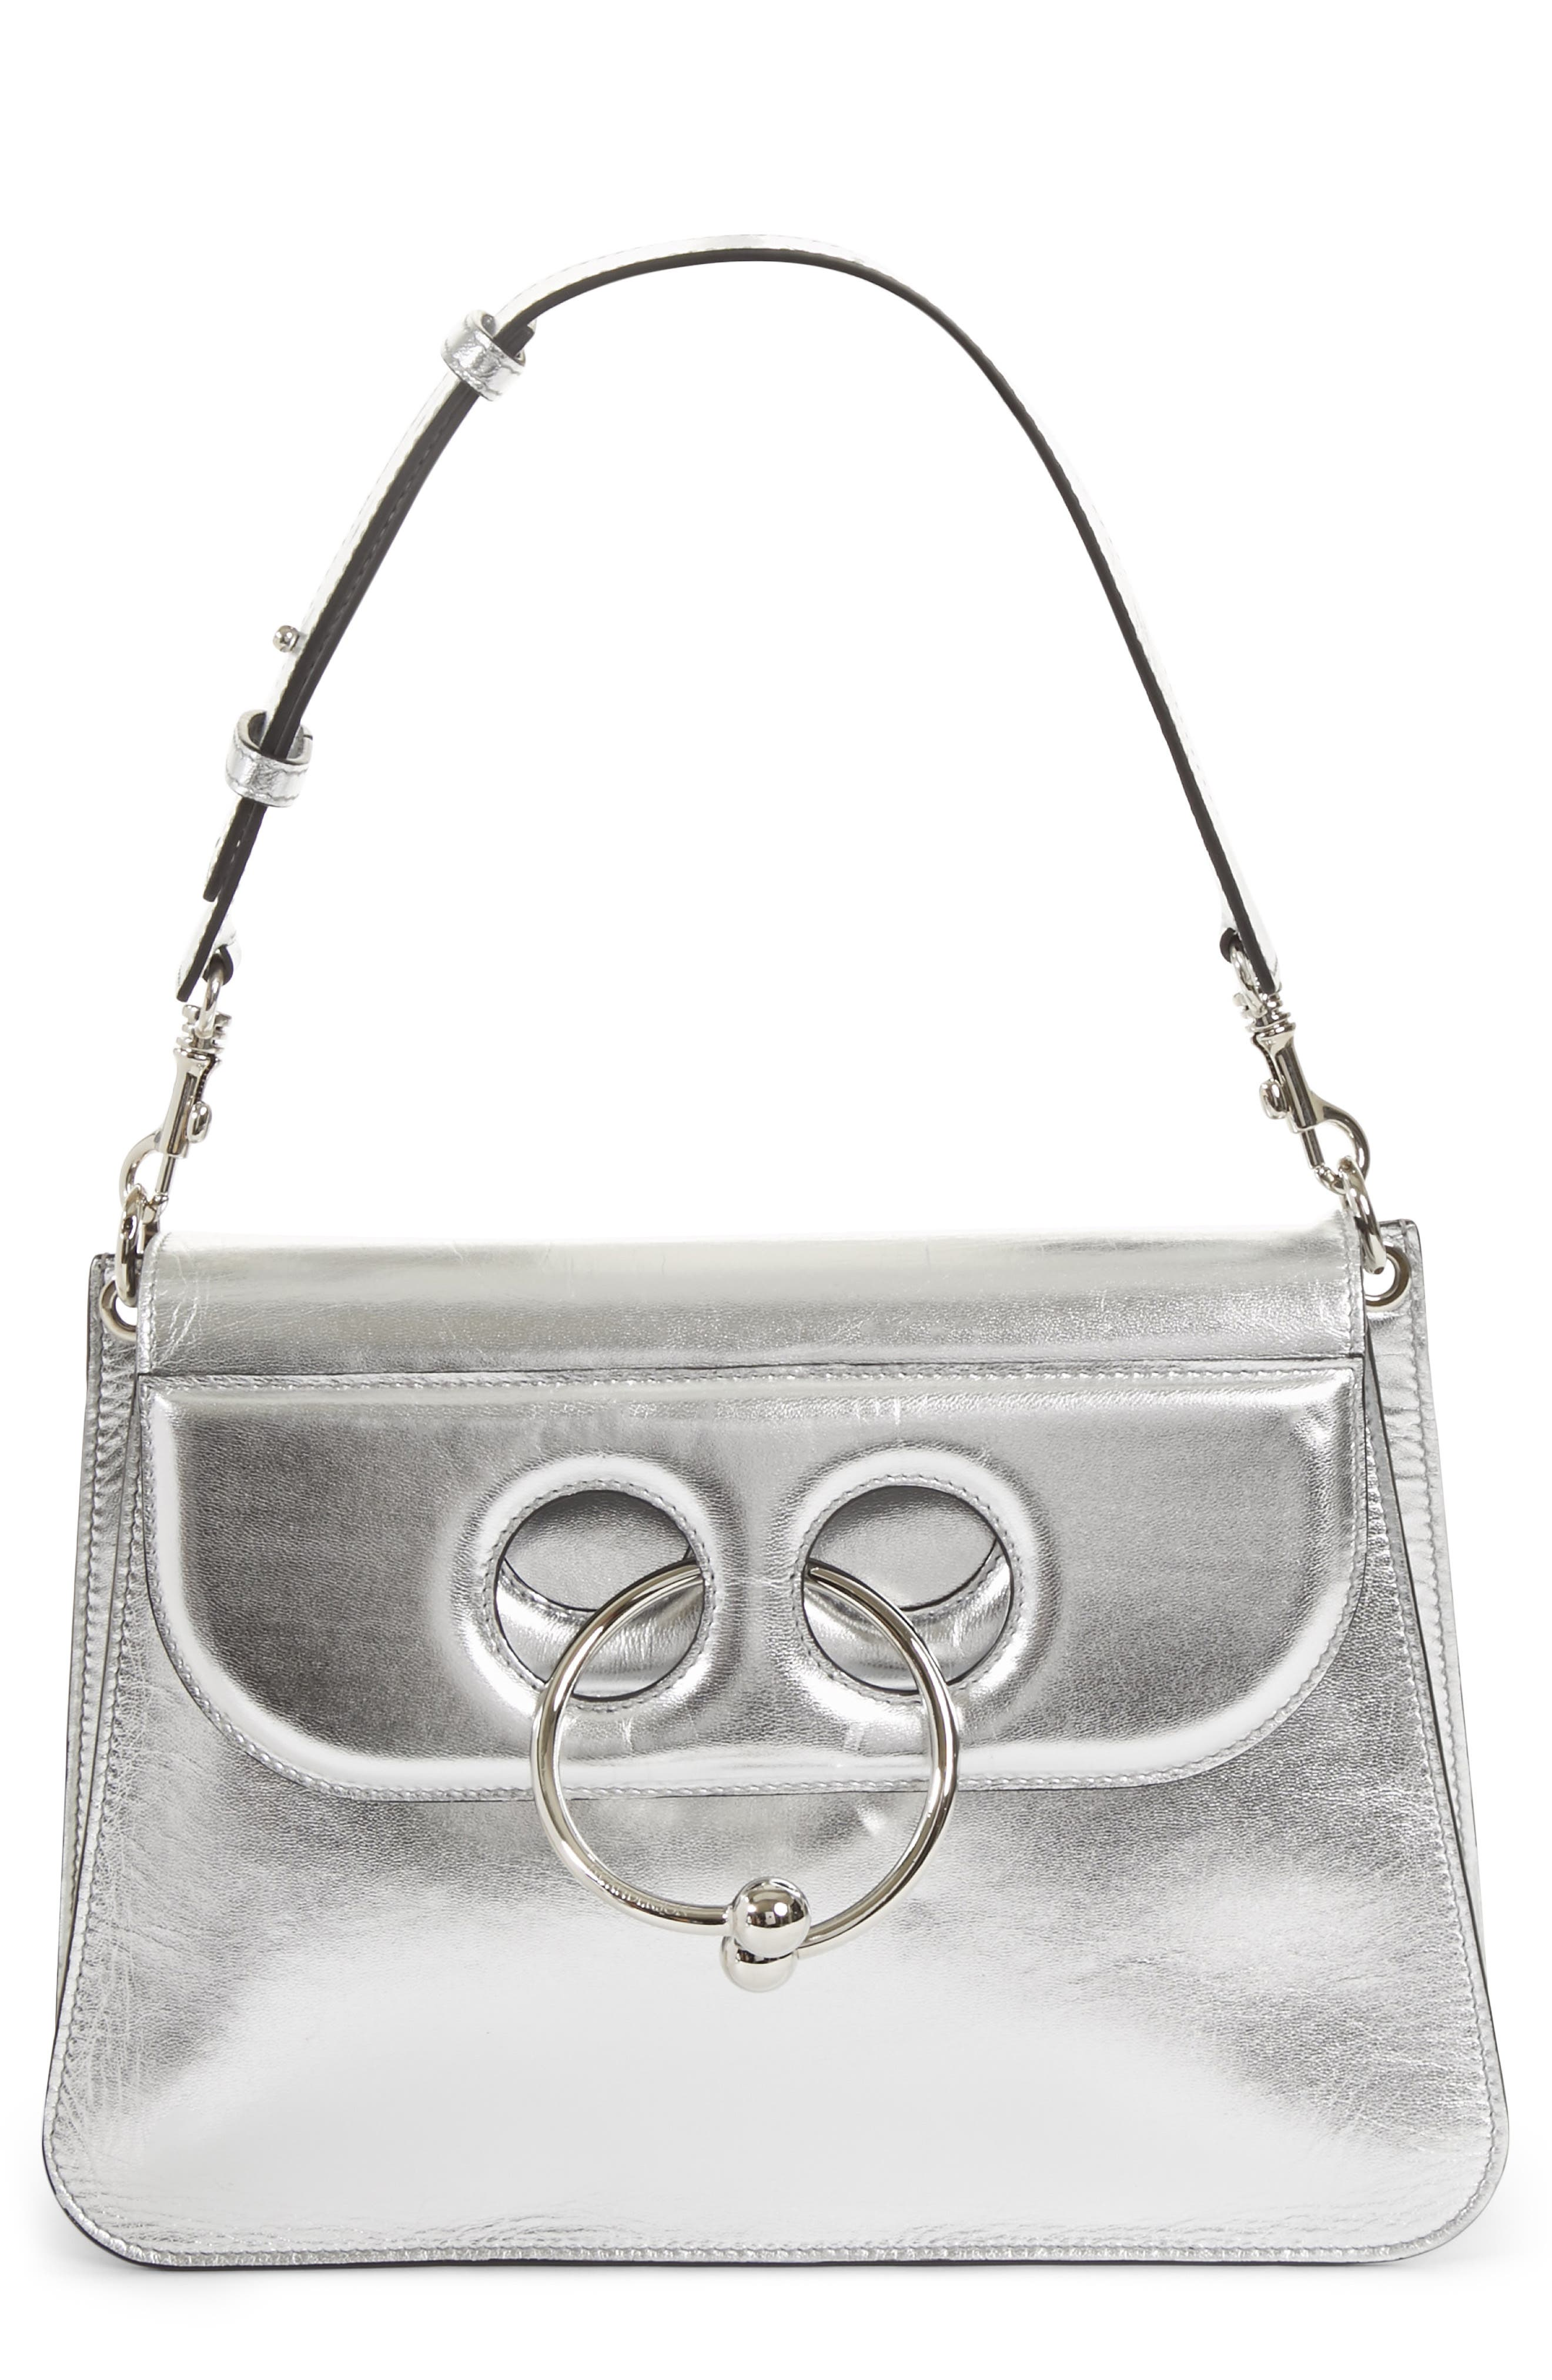 Alternate Image 1 Selected - J.W.ANDERSON Medium Pierce Metallic Shoulder Bag